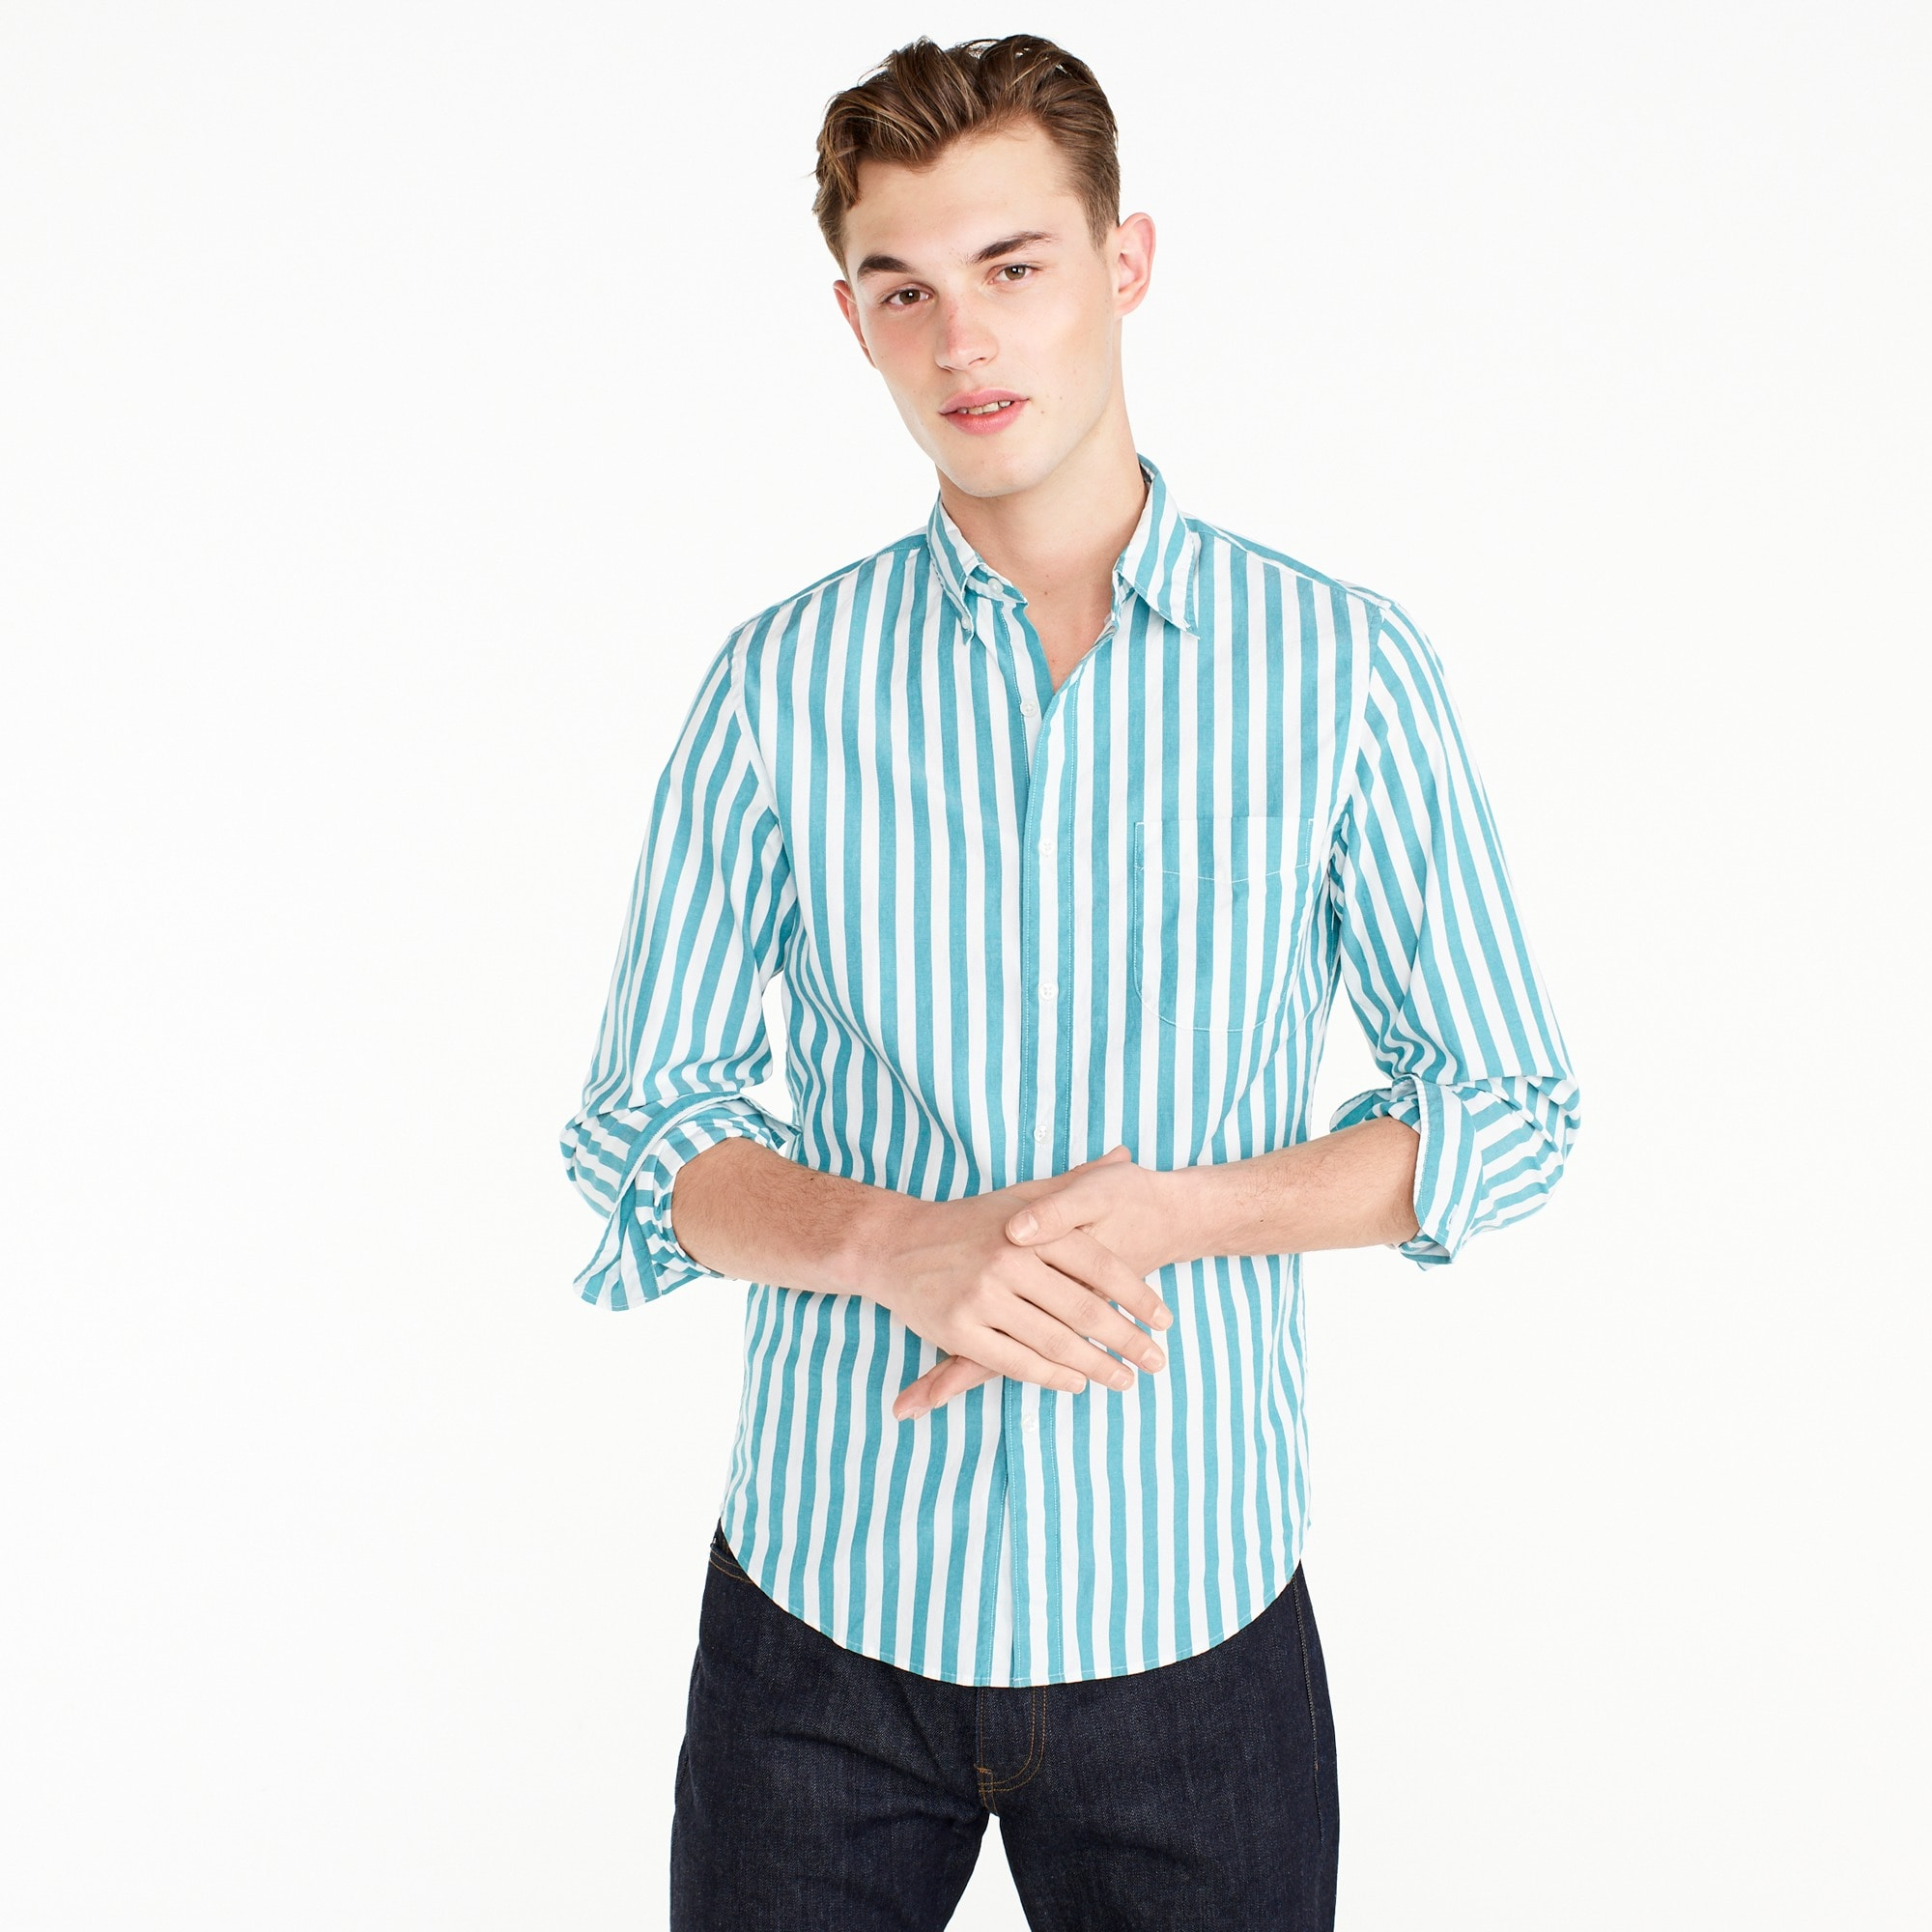 Image 1 for Slim stretch Secret Wash shirt in turquoise stripe